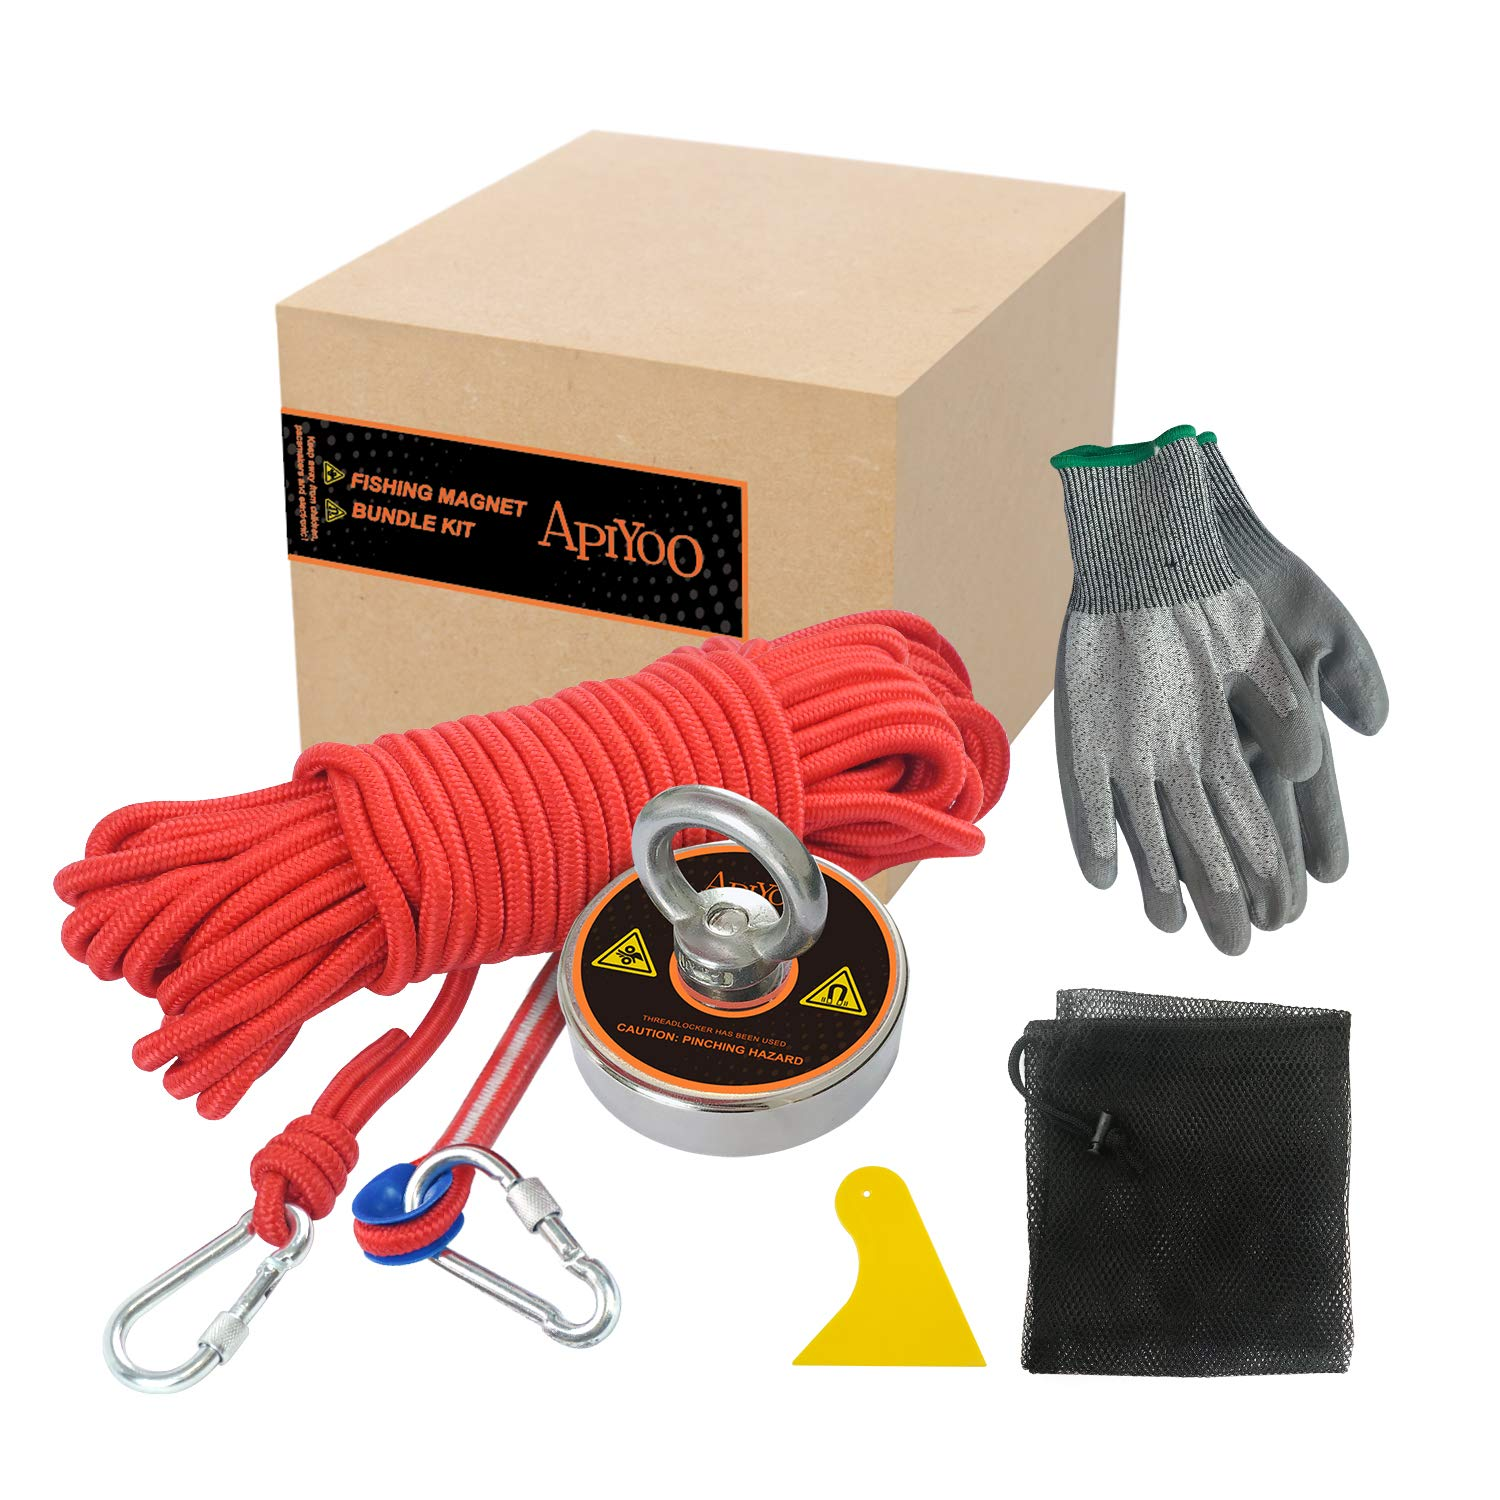 410lbs (185KG) Super Strong N52 Fishing Magnets(D60), with 49ft Thick Durable Rope, a Pair of Level 3 Anti-Cut Gloves,2 Hooks,1 Scraper and 1 net Pocket, Salvage Magnet to Hunting Underwater Treasure